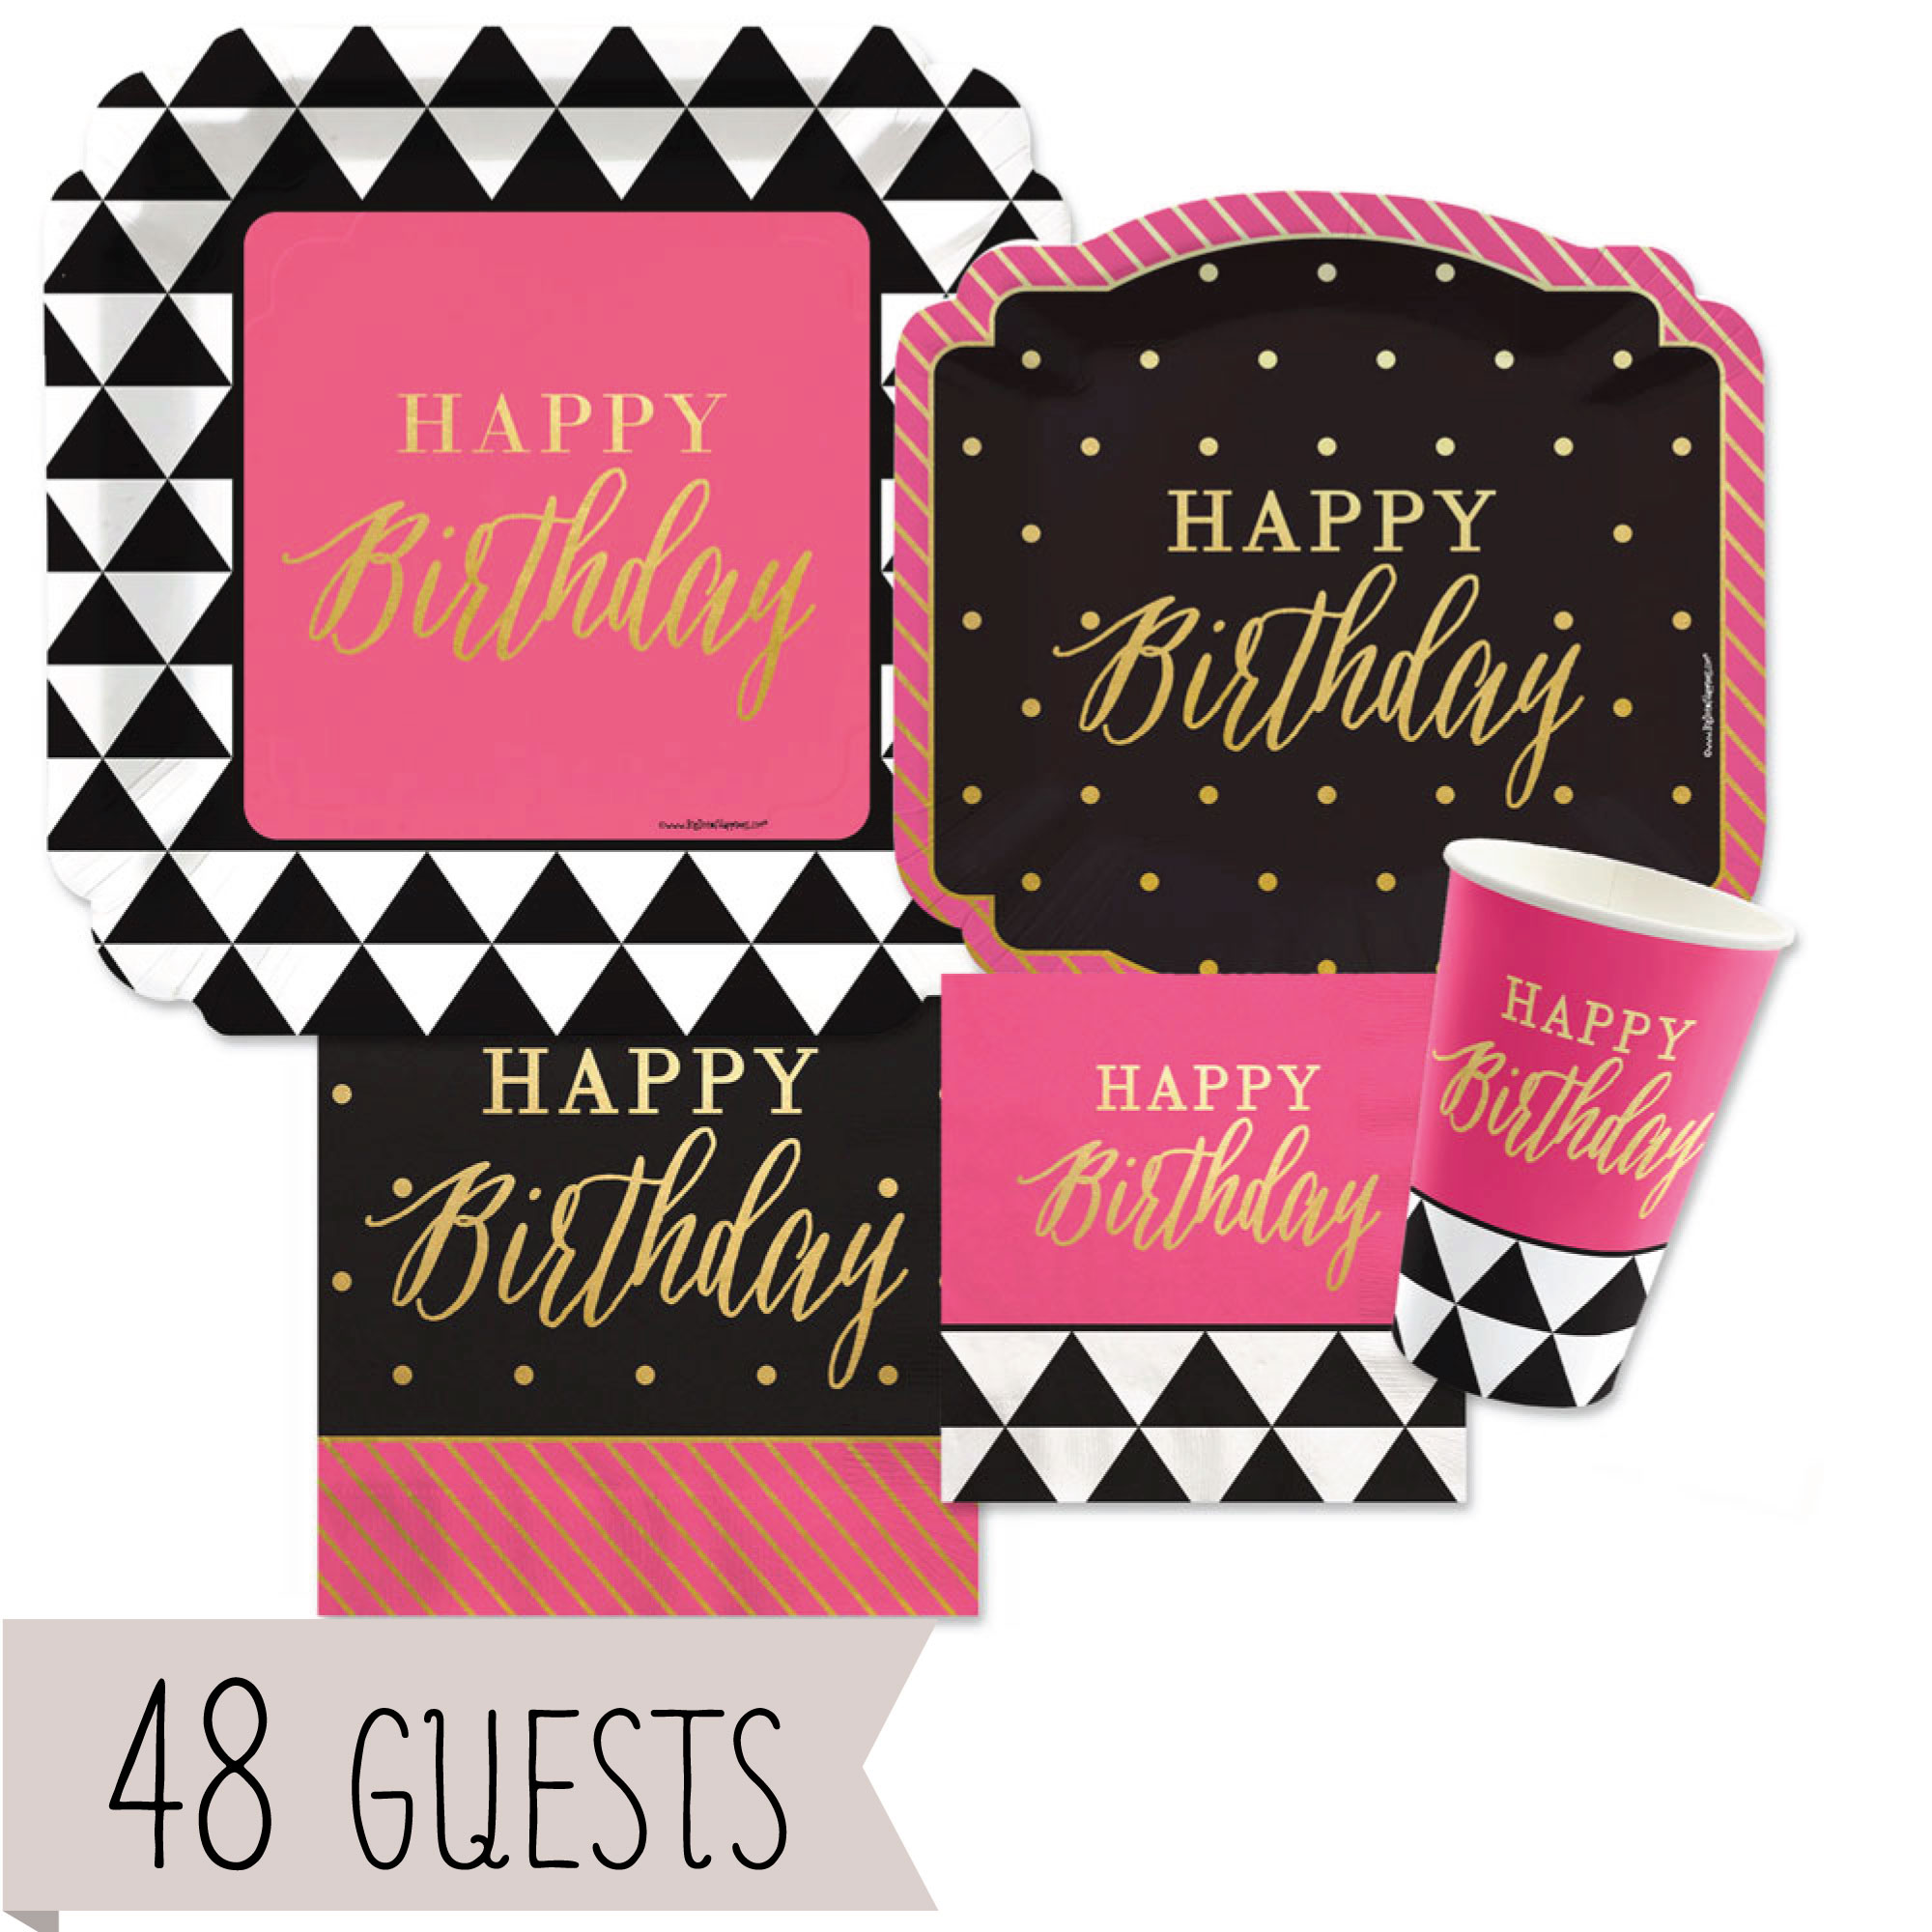 Big Dot of Happiness Chic Happy Birthday - Pink, Black wi...